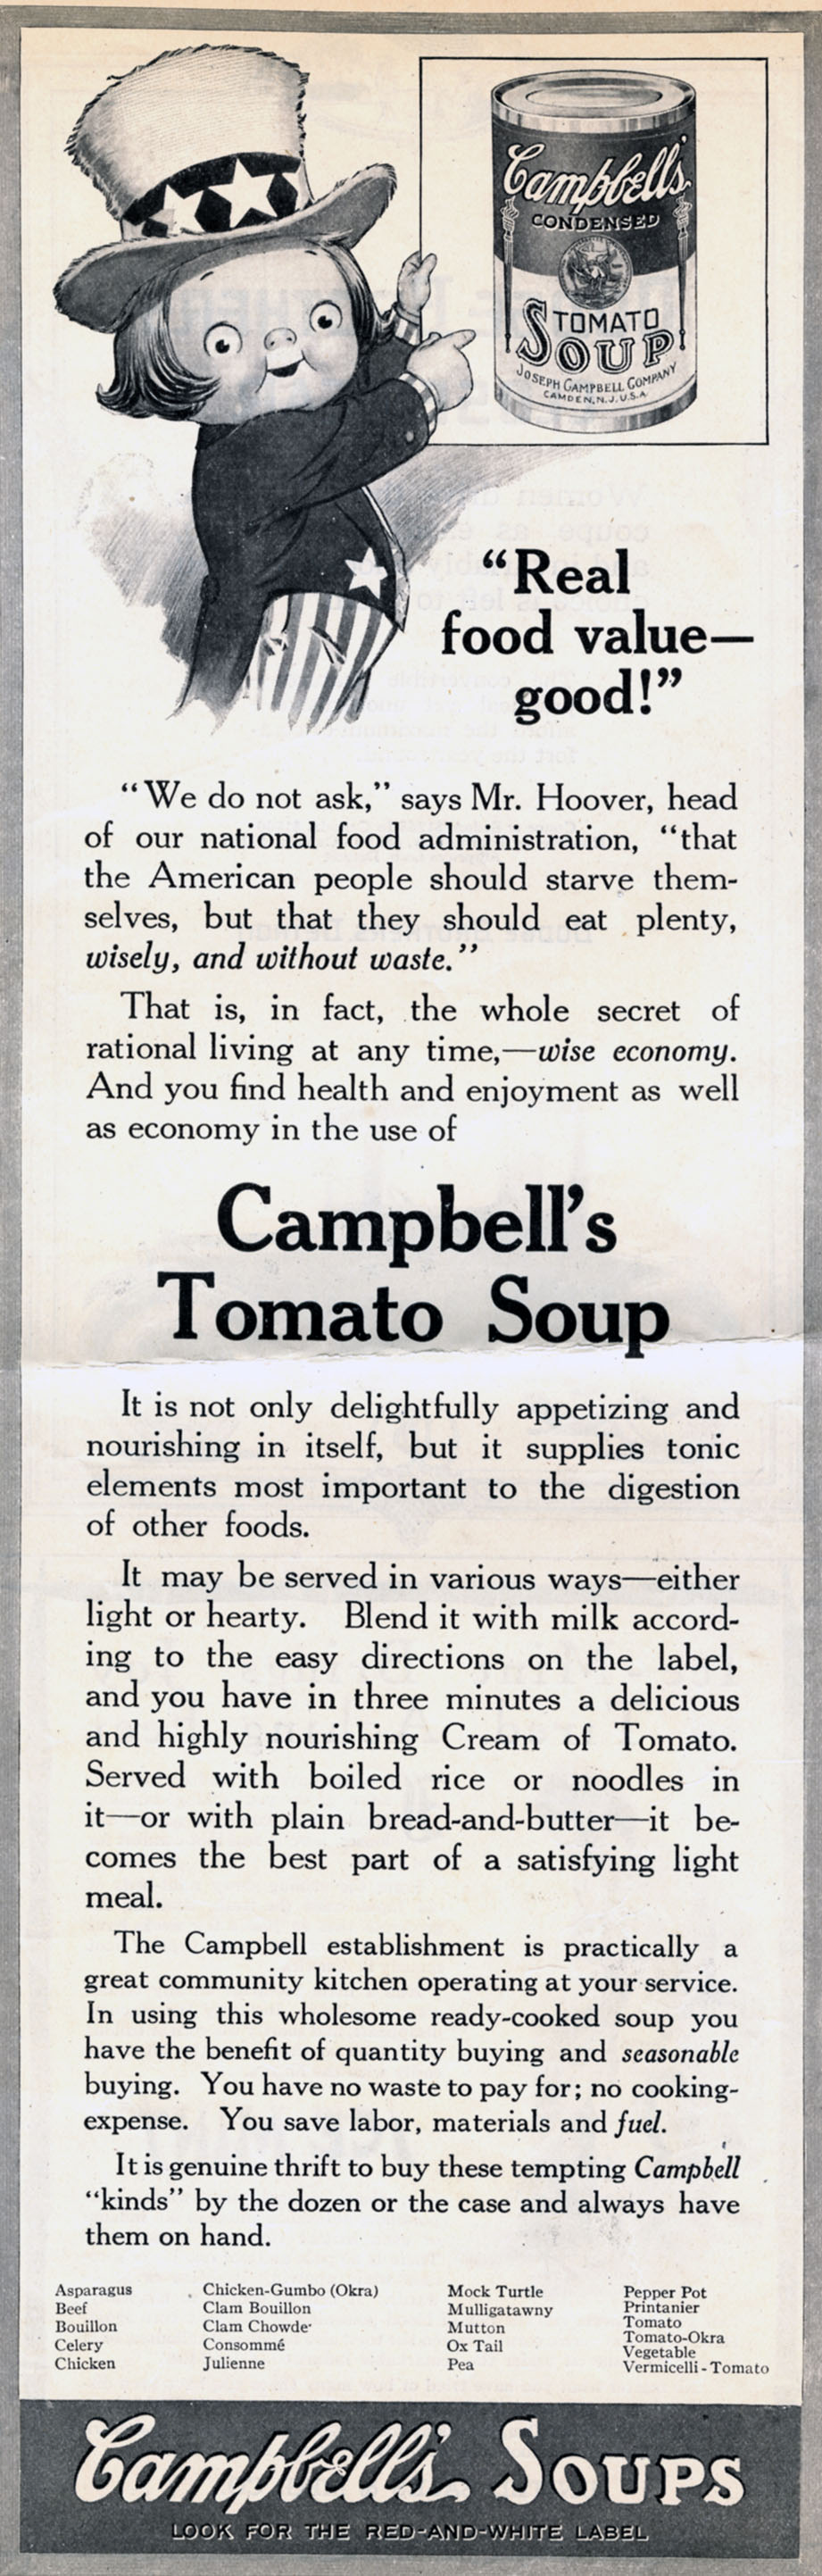 Grace Drayton, print ad for Campbell's Tomato Soup. Unknown publication. 1920.